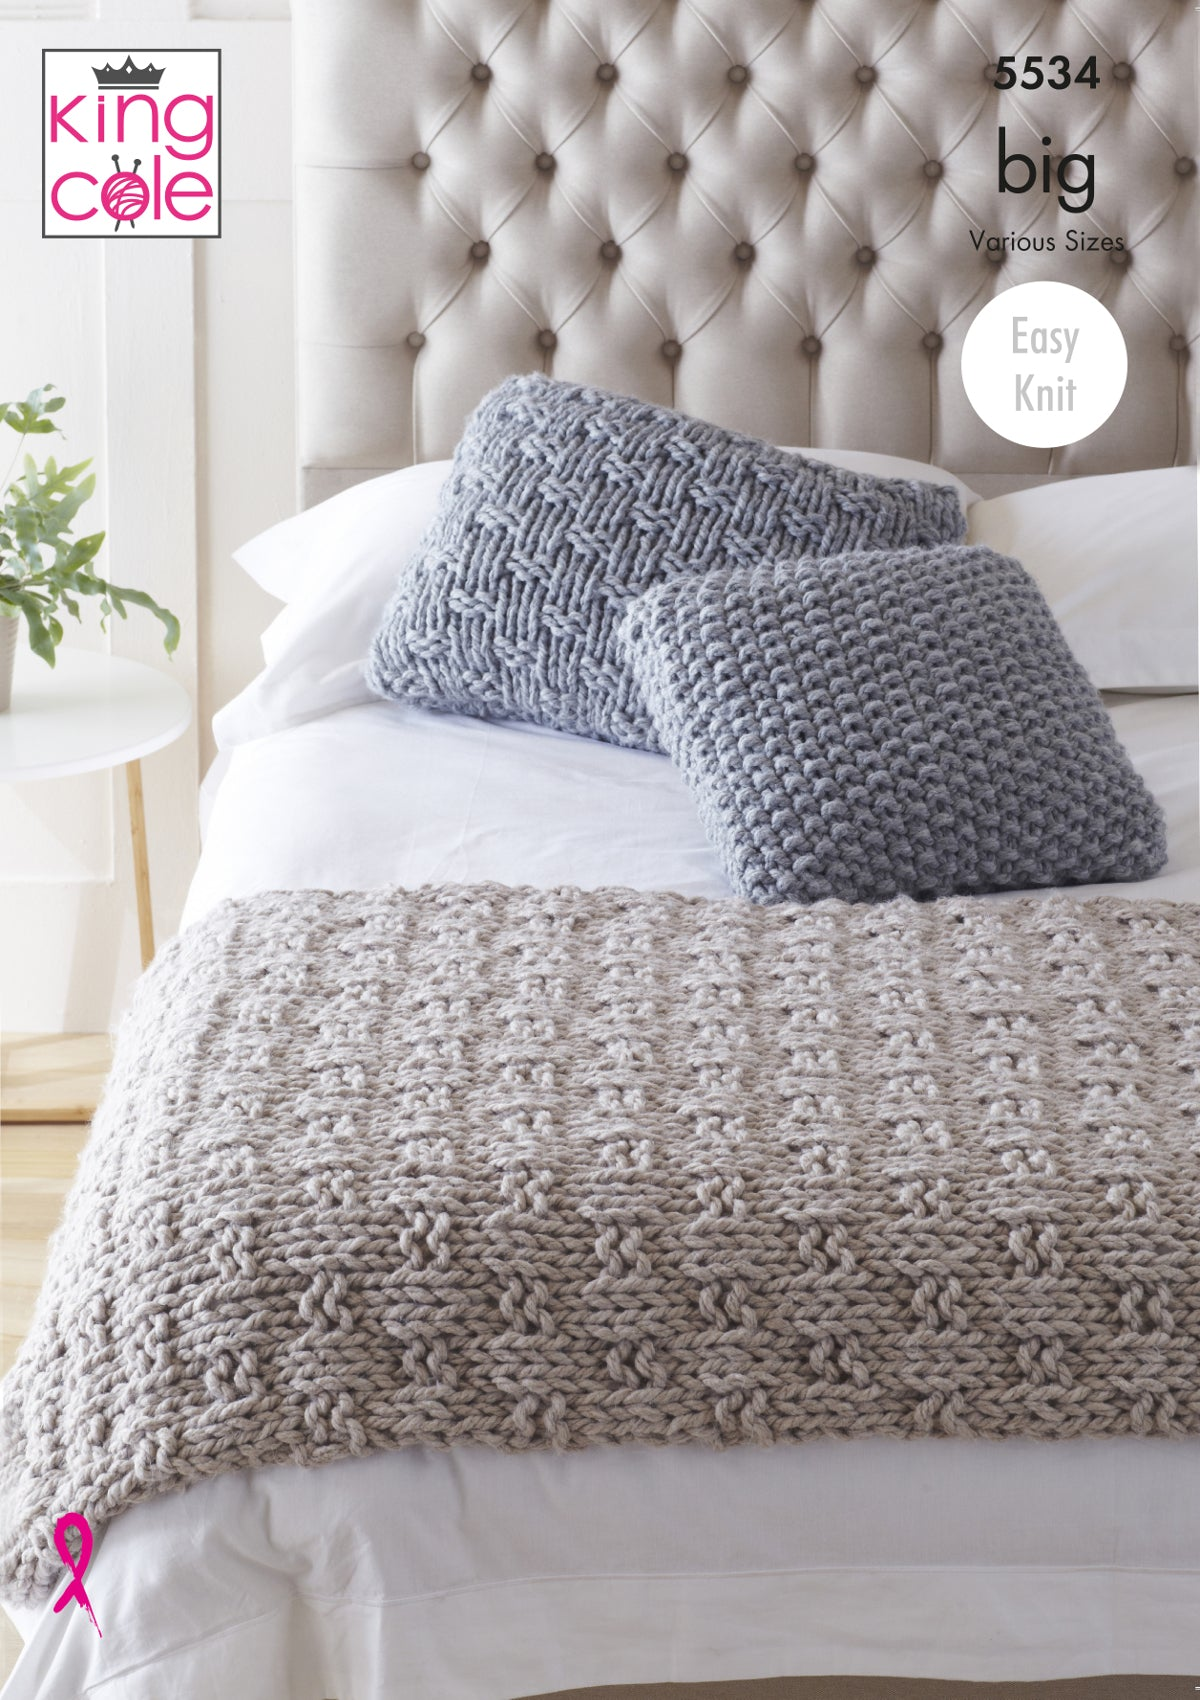 King Cole Super Chunky Knitting Pattern Bed Runner Cushions 5534 Classic Home Store